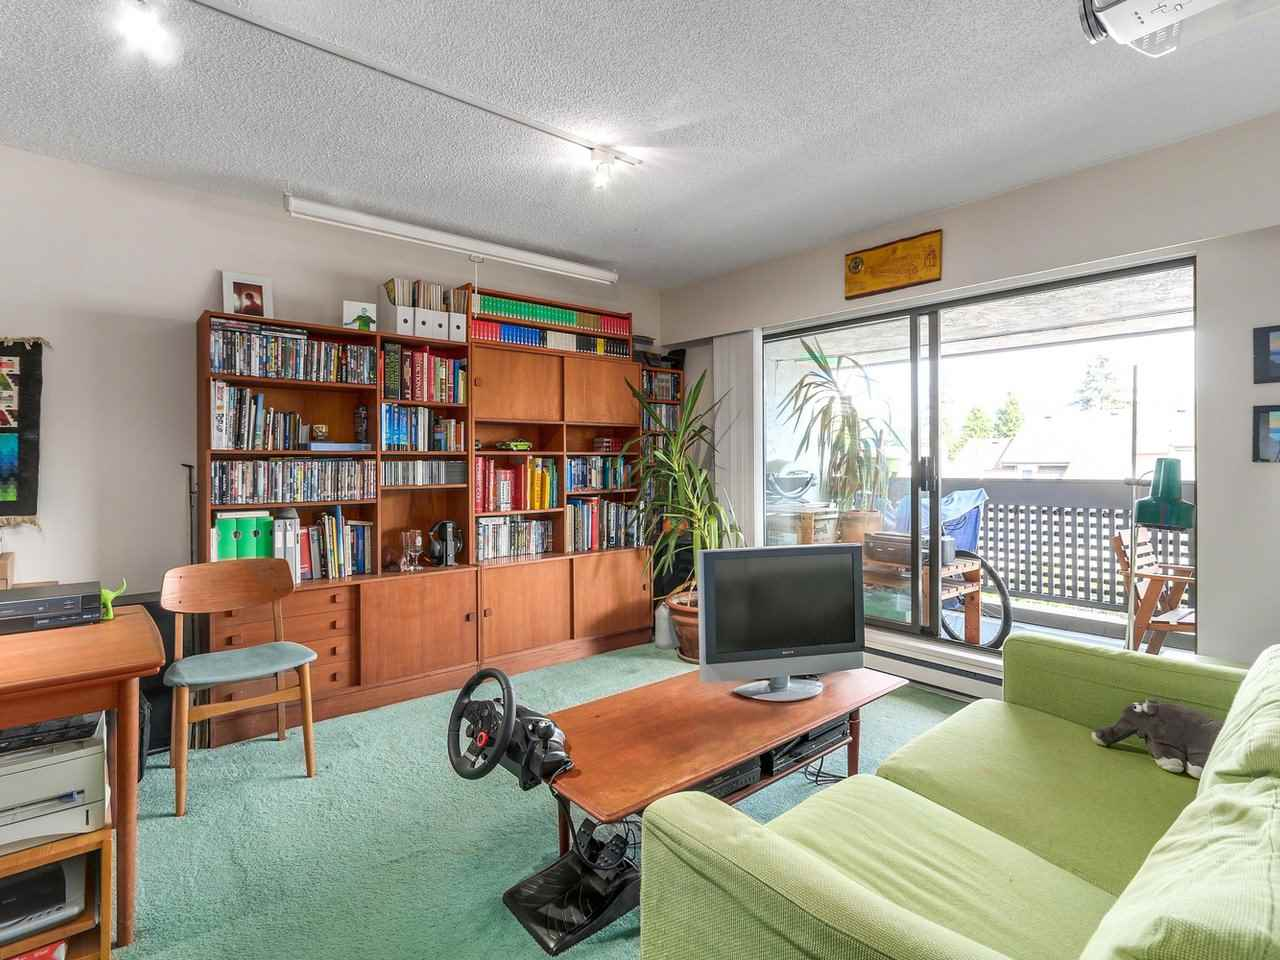 Photo 5: 309 1977 STEPHENS Street in Vancouver: Kitsilano Condo for sale (Vancouver West)  : MLS(r) # R2183869